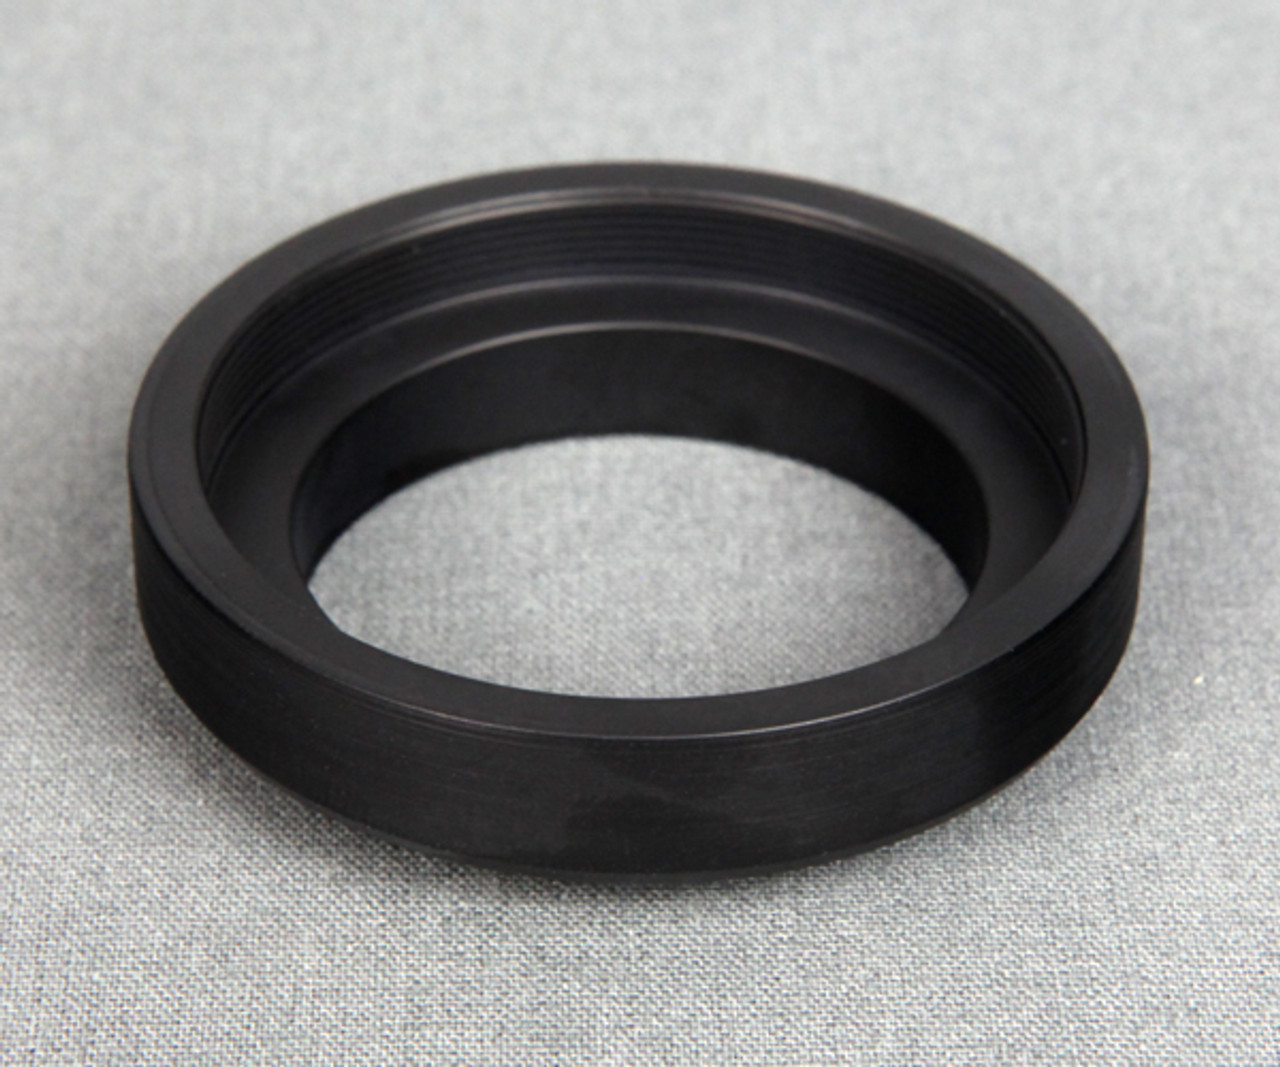 48 mm Female to 42 mm Male Adapter - SFA-F48M42-008